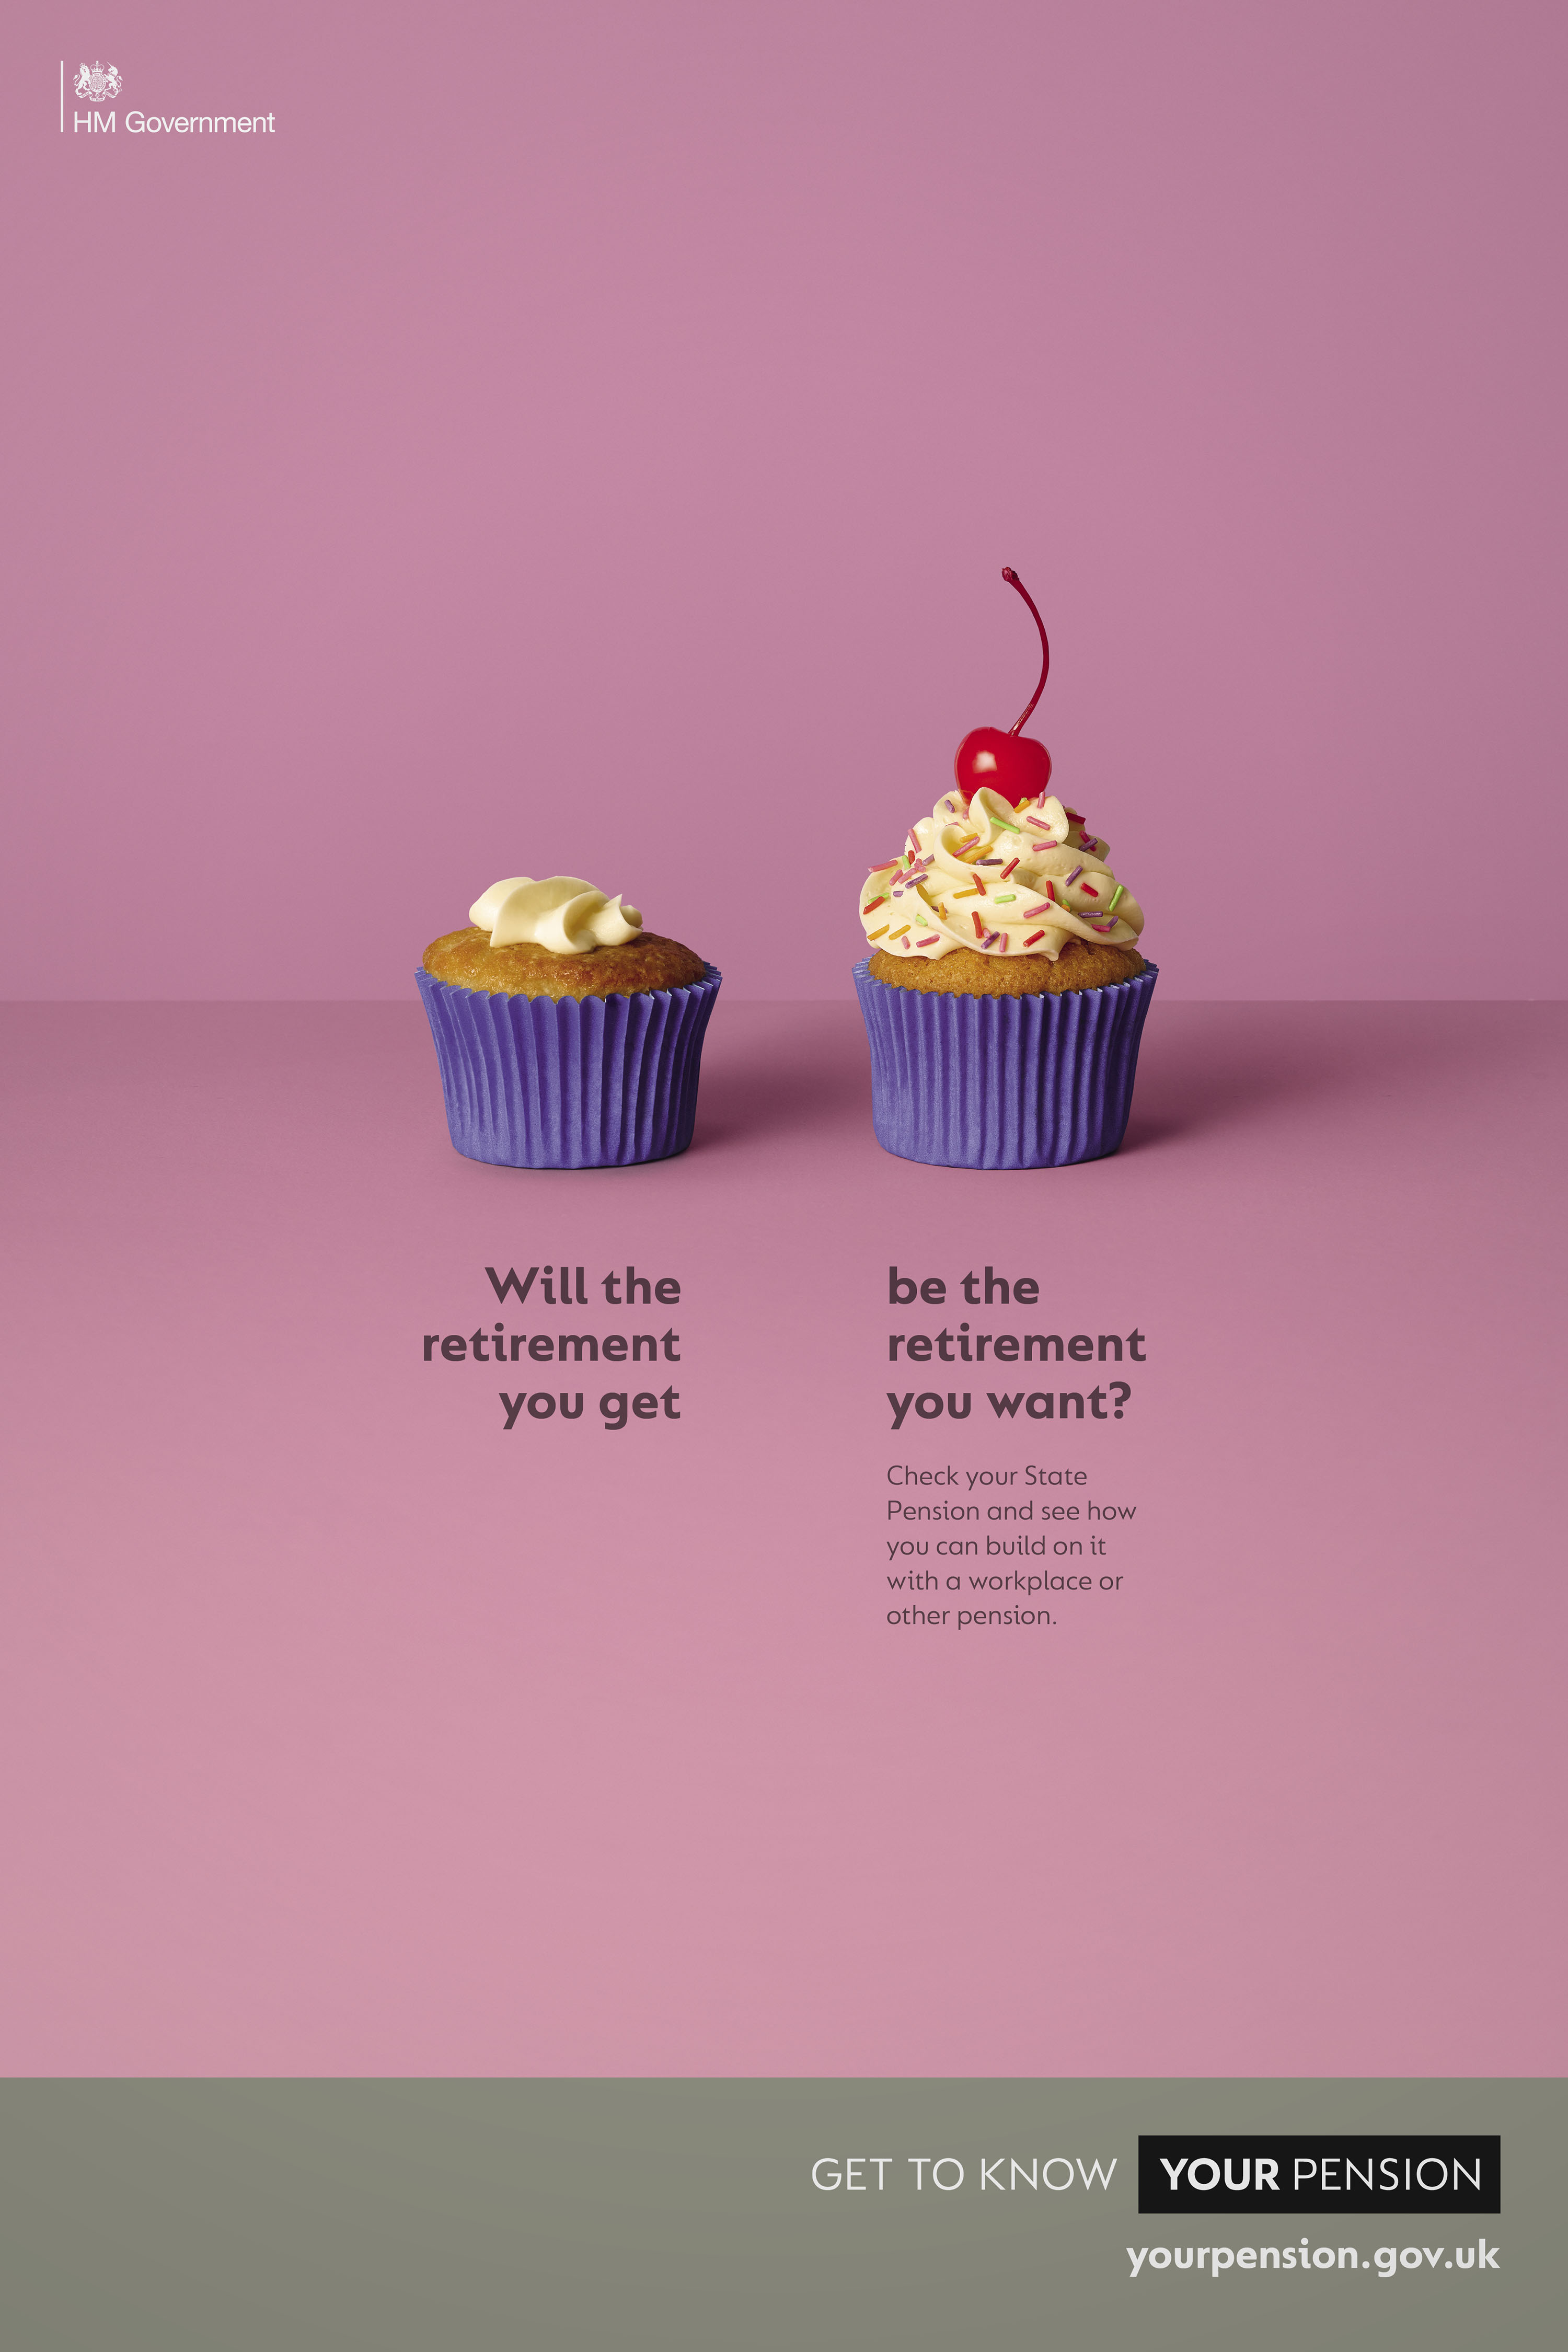 DWPStatePension-Cupcake-Sara-Morris